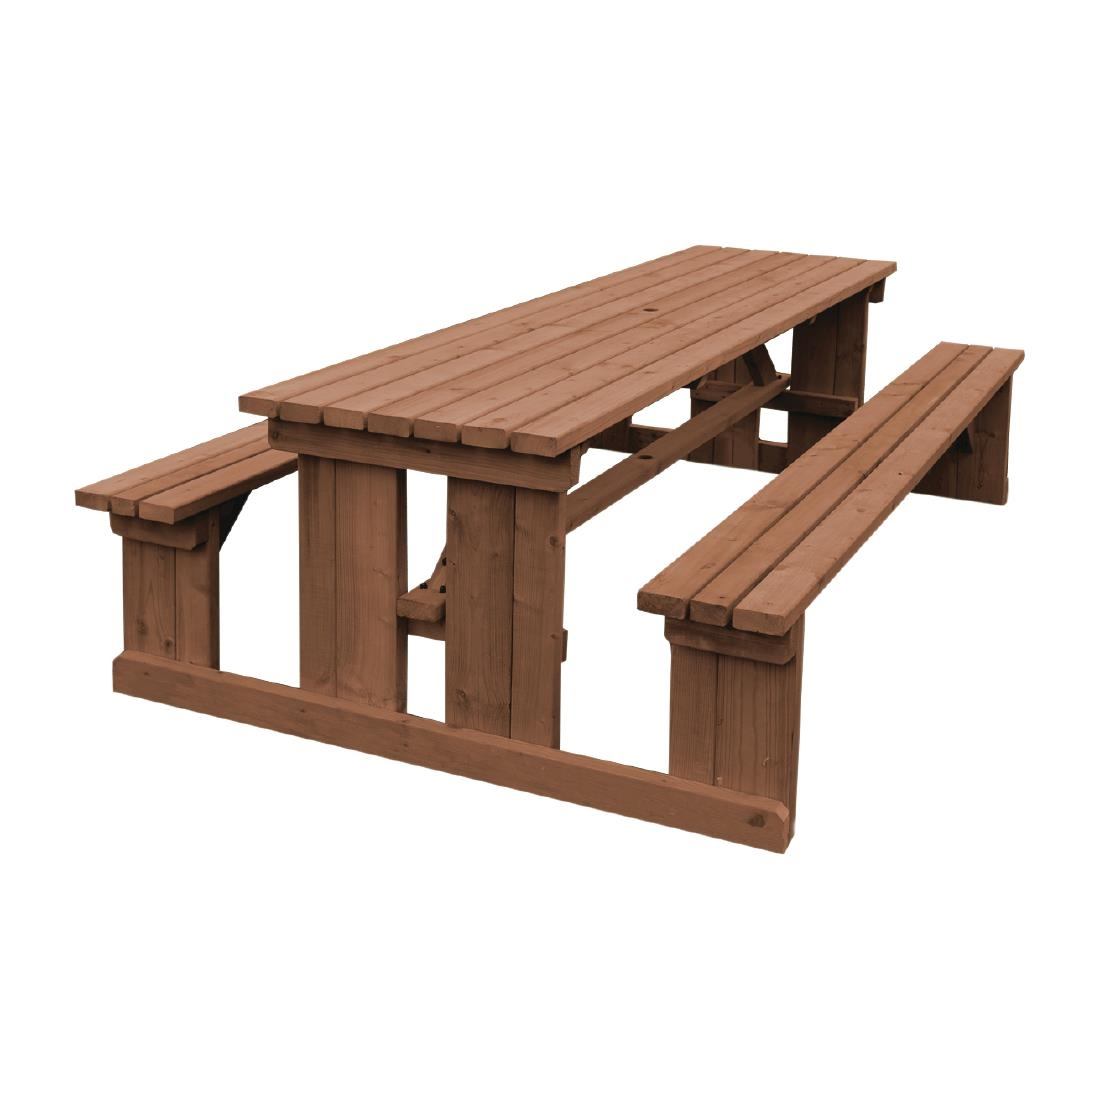 Phenomenal Bolero Walk In Picnic Bench Rustic Brown 8Ft Andrewgaddart Wooden Chair Designs For Living Room Andrewgaddartcom